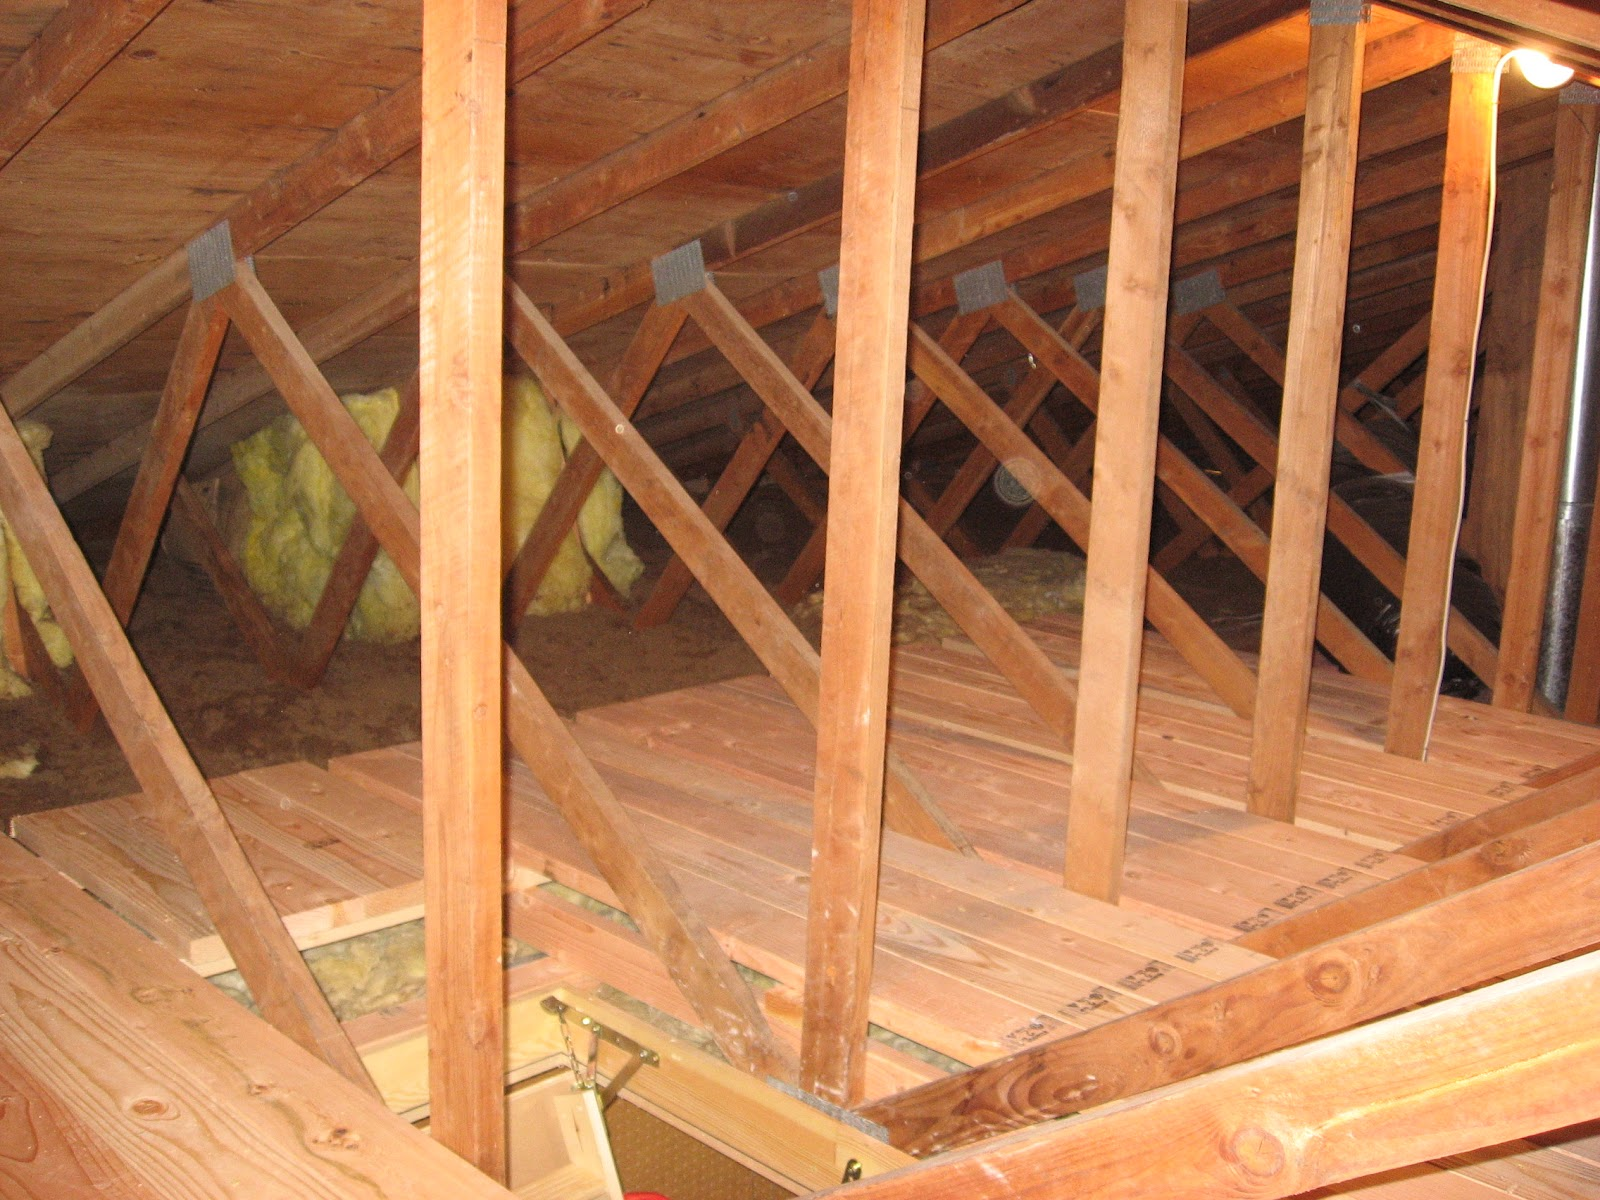 Attic Storage Truss Roof Ppi Blog & Truss With Attic Space | Migrant Resource Network